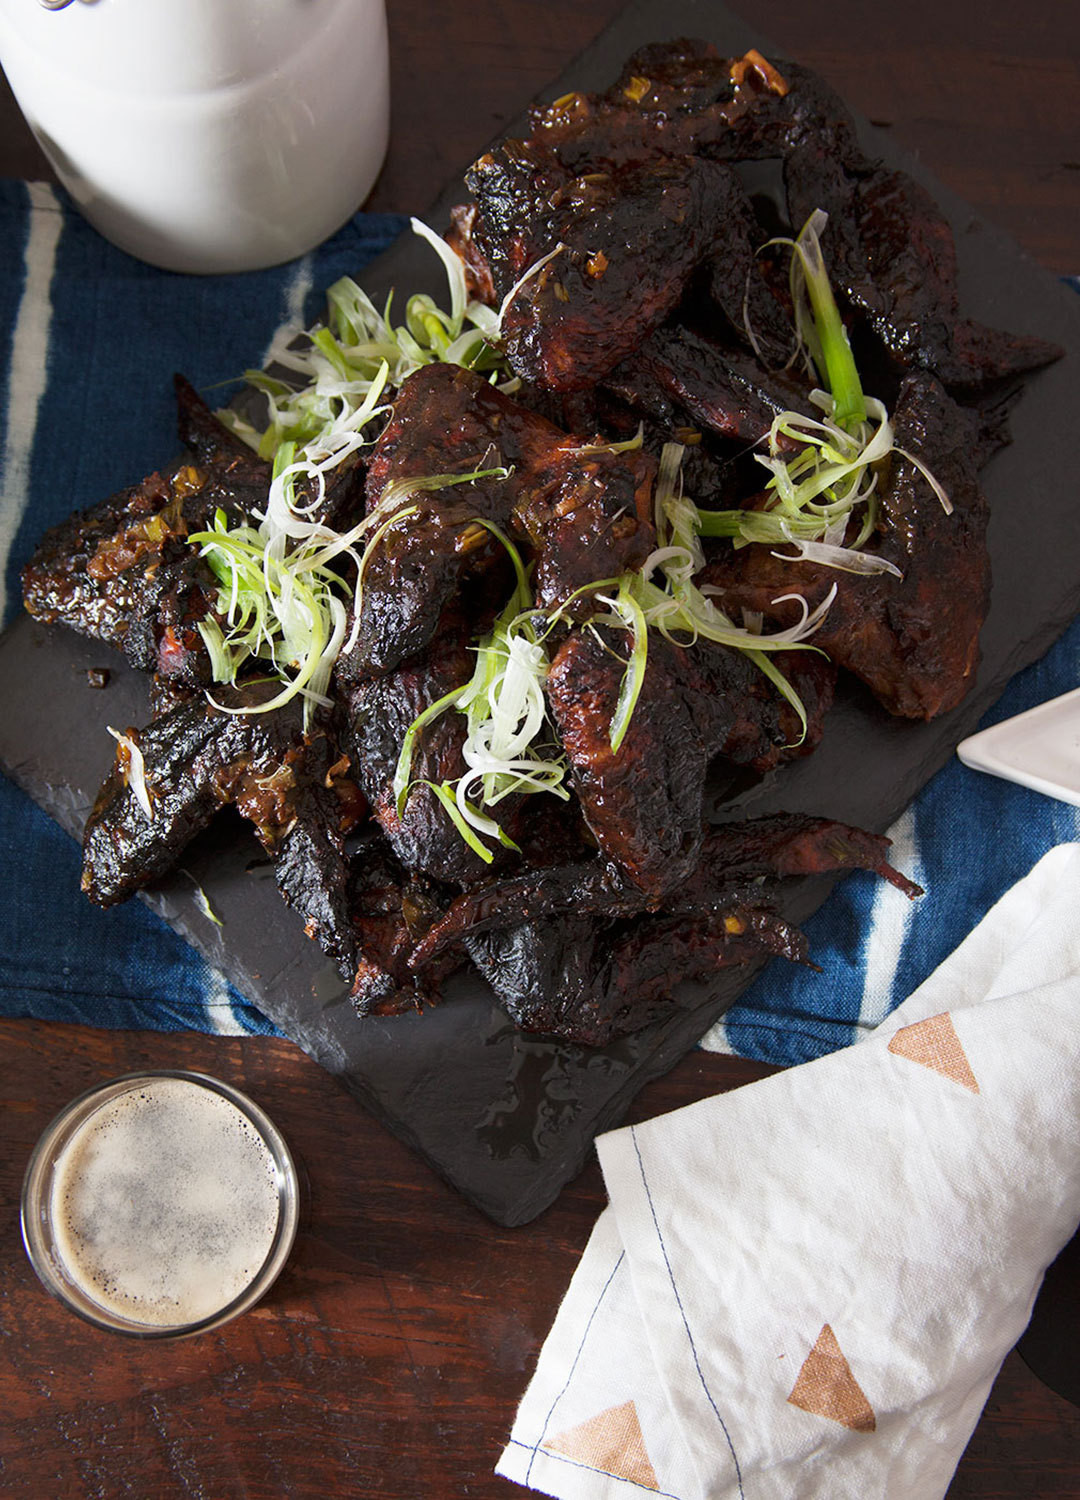 Lippert's baked, not fried chicken wings get a leg up on the standard buffalo variety thanks toAsian staples such as hoisin sauce,tamari, and garlic.